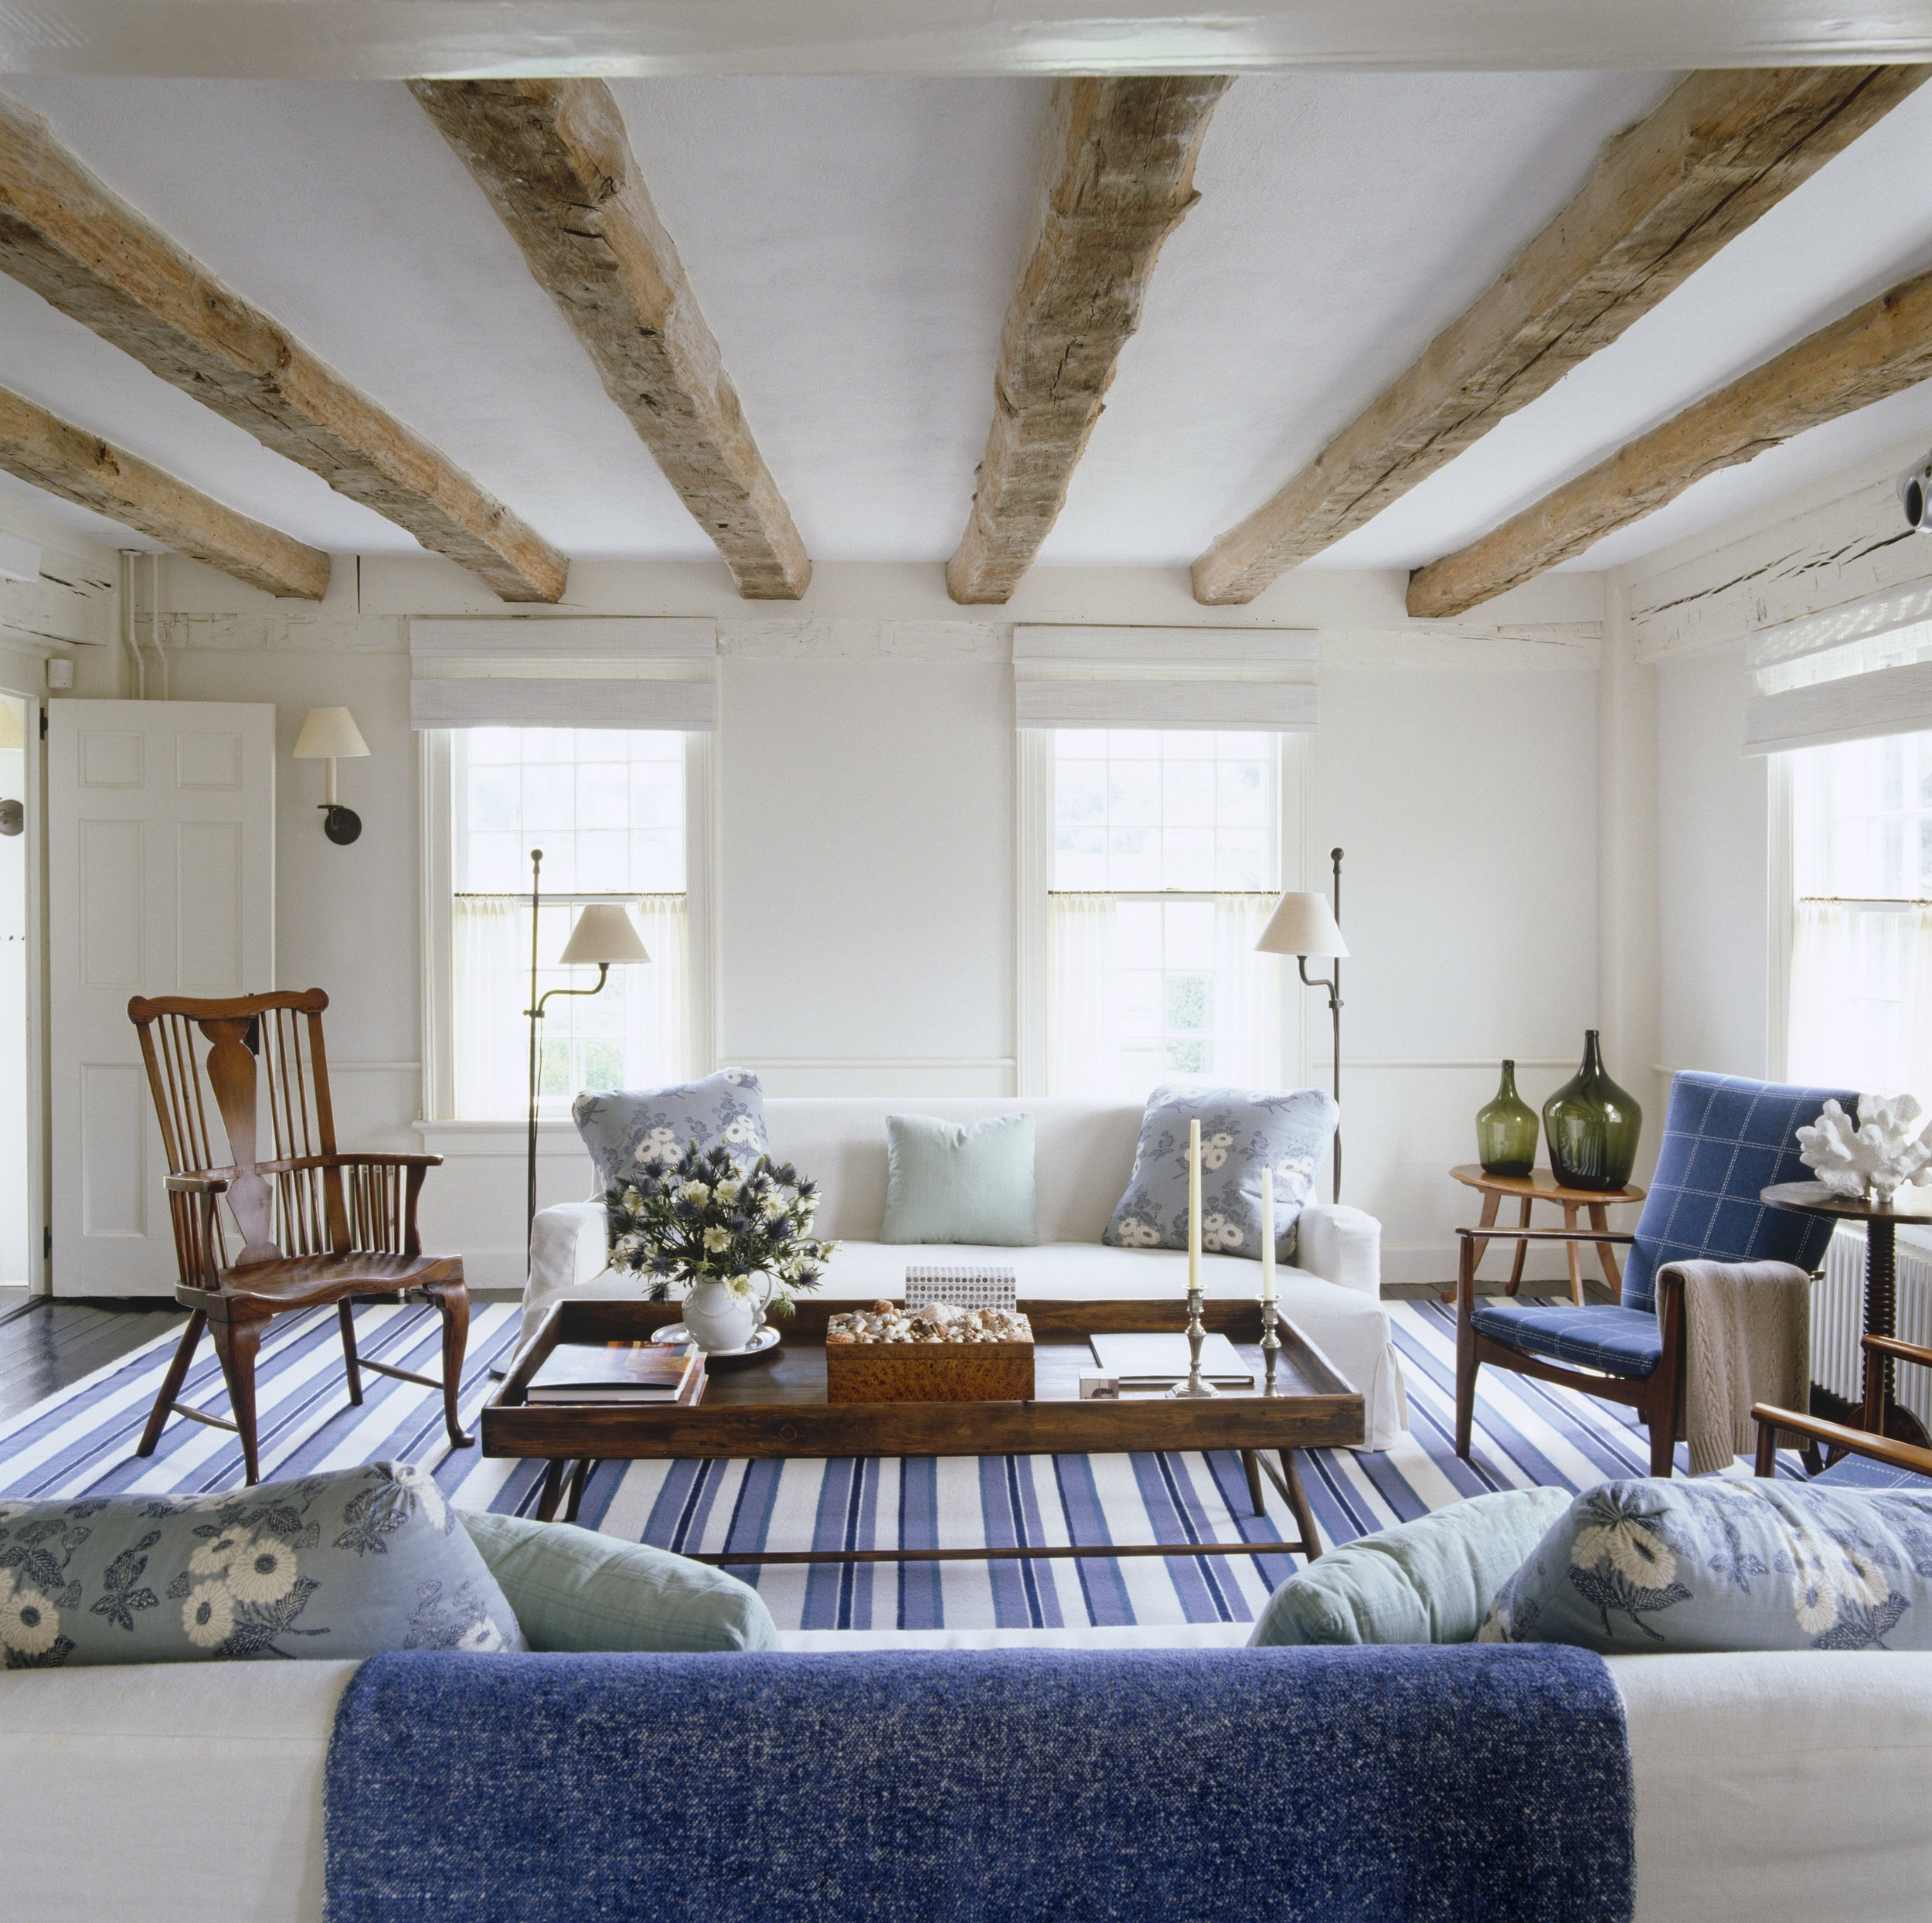 A historic home in East Hampton with a dhurrie carpet and range of blues.